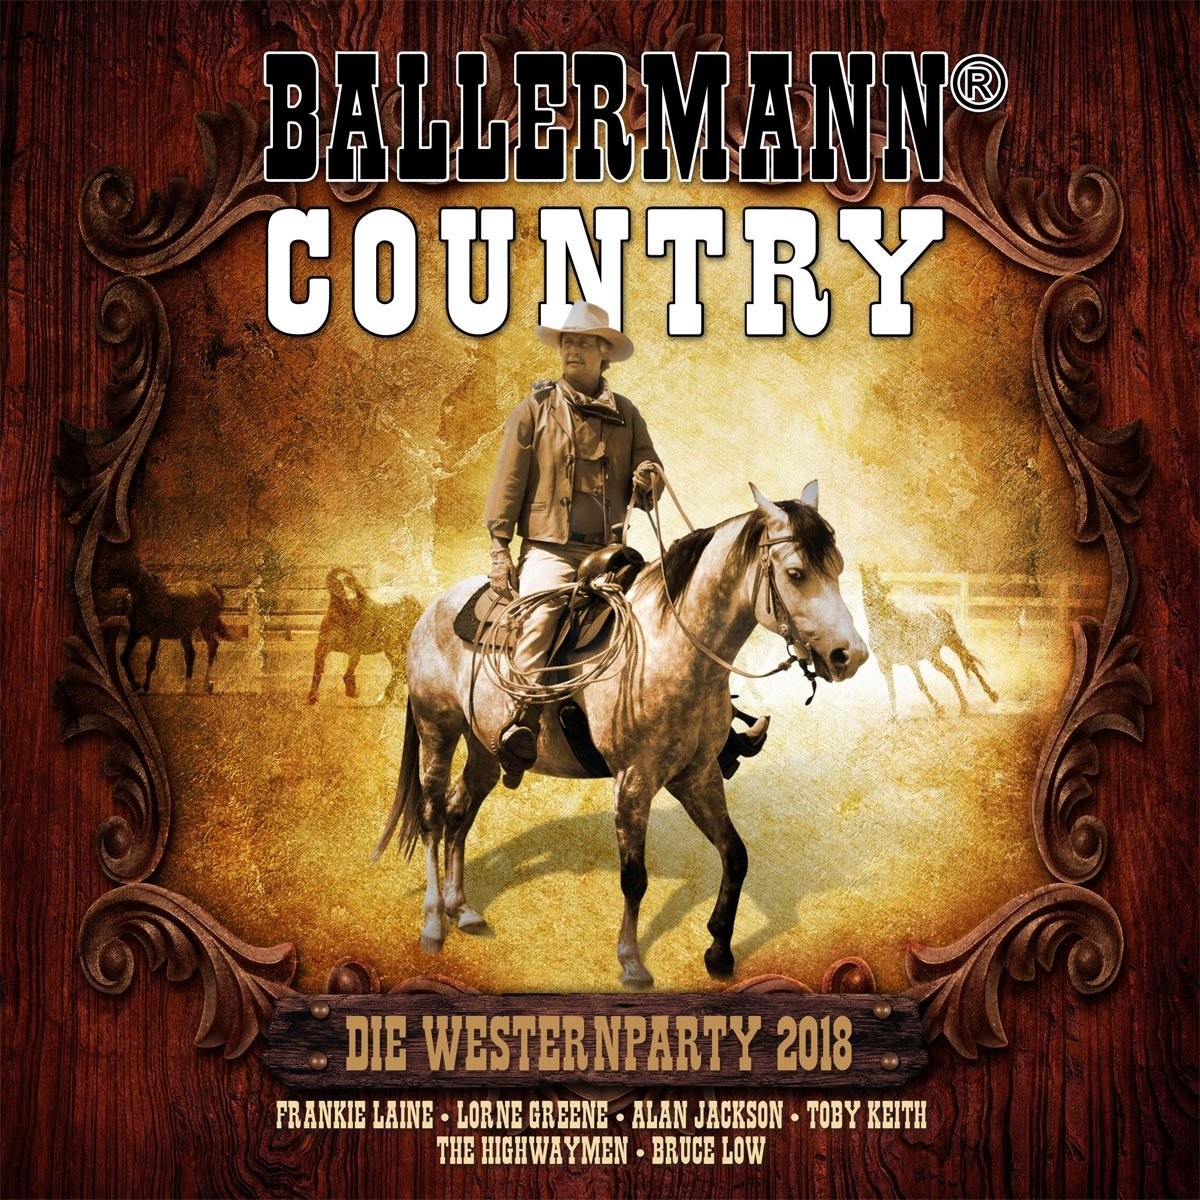 VA - Ballermann Country Die Western Party 2018 - CD - FLAC - 2017 - NBFLAC Download